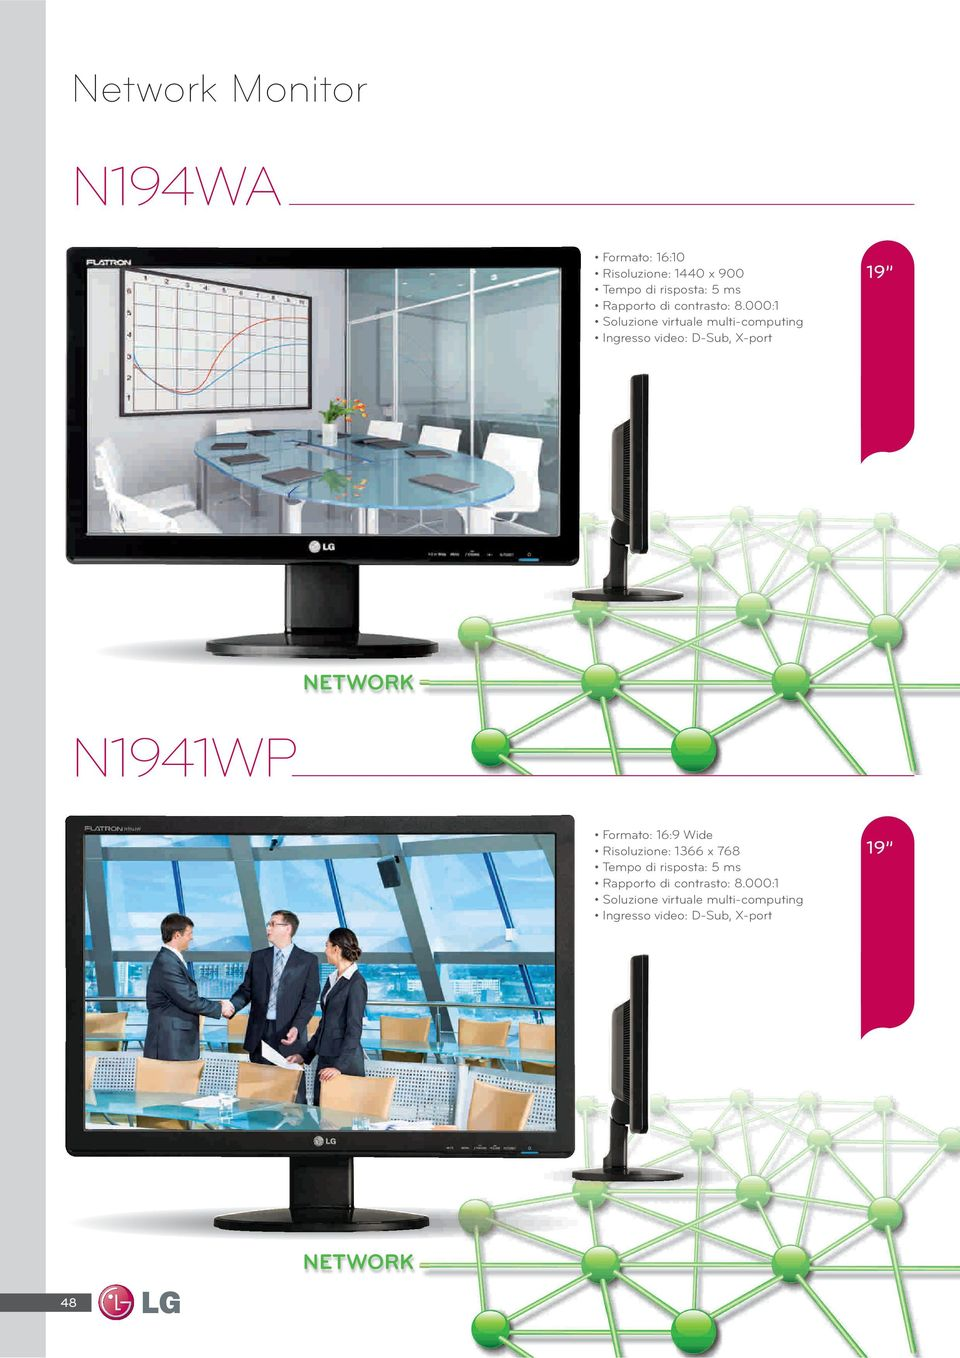 000:1 Soluzione virtuale multi-computing Ingresso video: D-Sub, X-port 19 NETWORK N1941WP